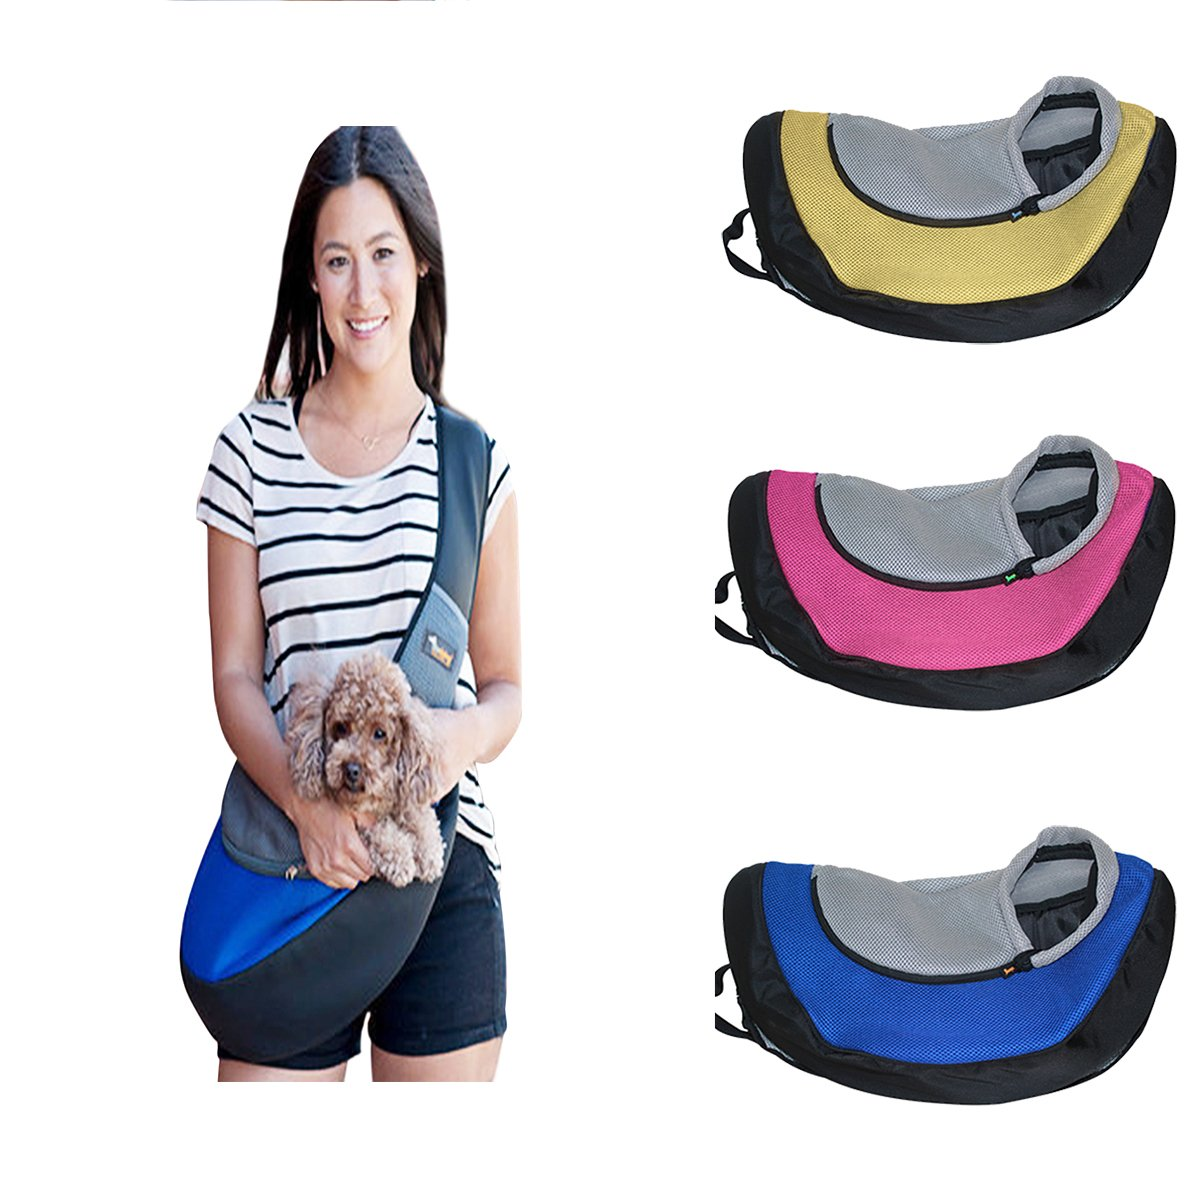 Ondoing Small Dog Cat Sling Carrier Bag Travel Tote Soft Comfortable Puppy Kitty Rabbit Shoulder Carry Tote Handbag, Blue